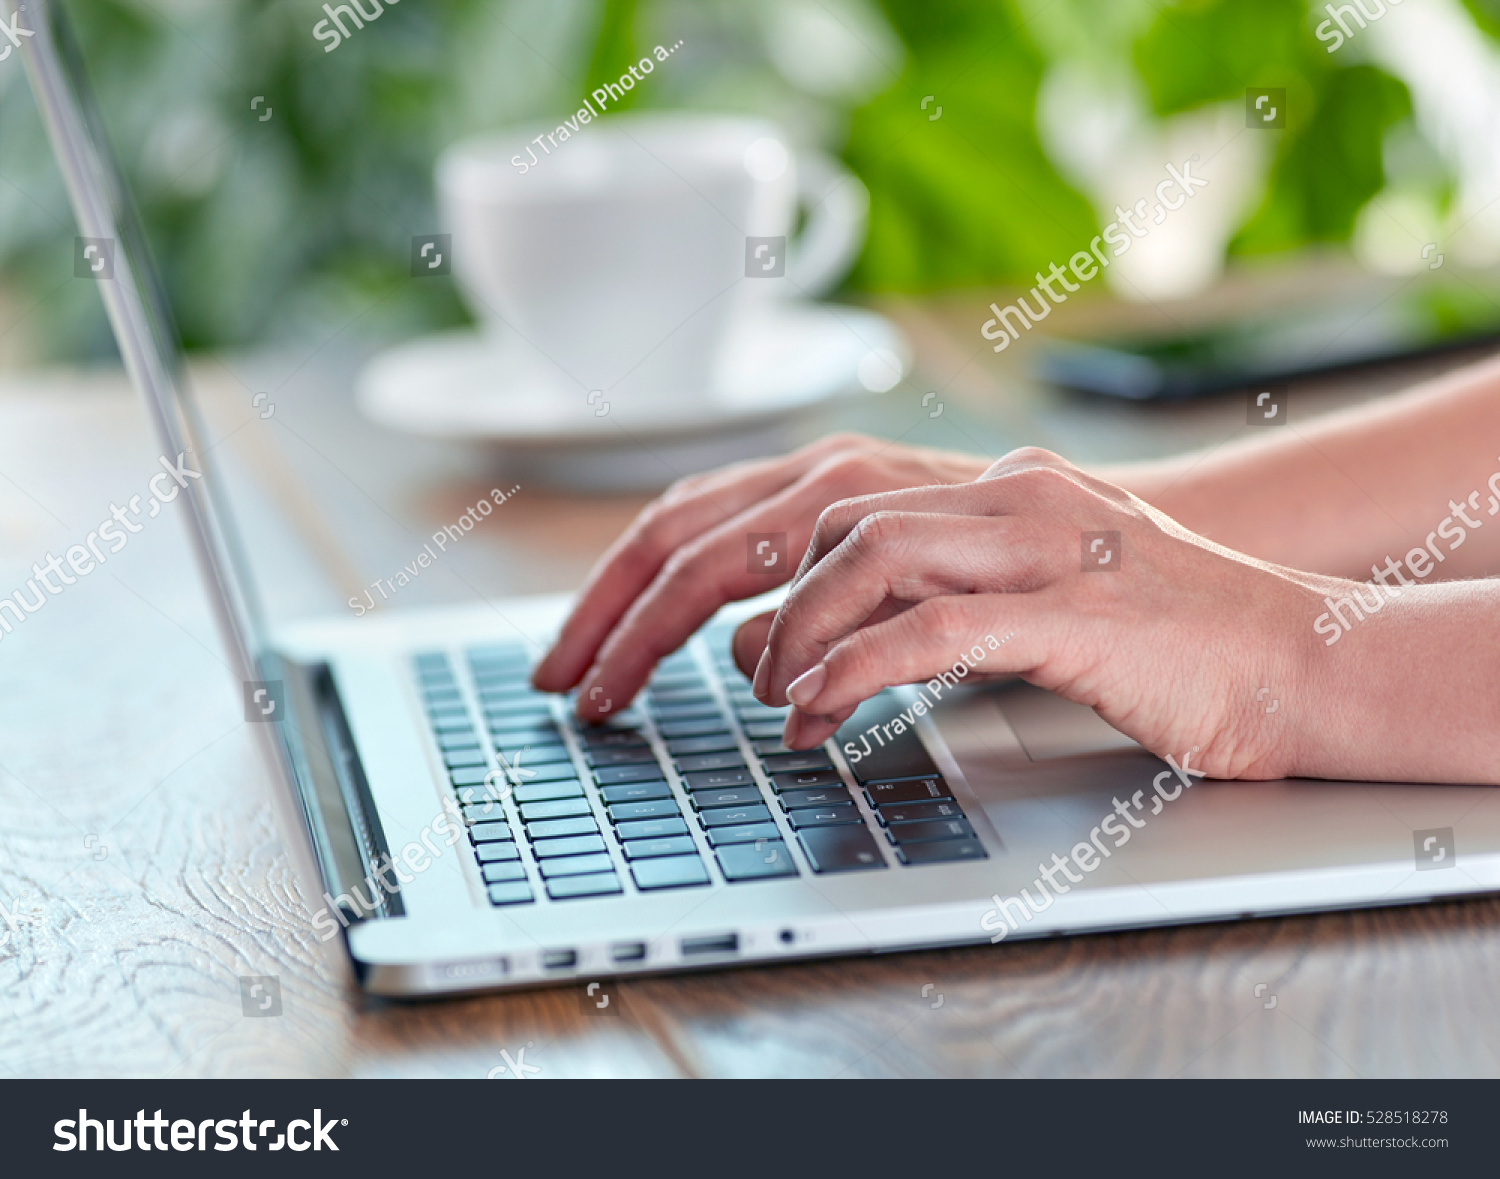 Woman working on her laptop computer Working on laptop at home or office concept Shallow DOF